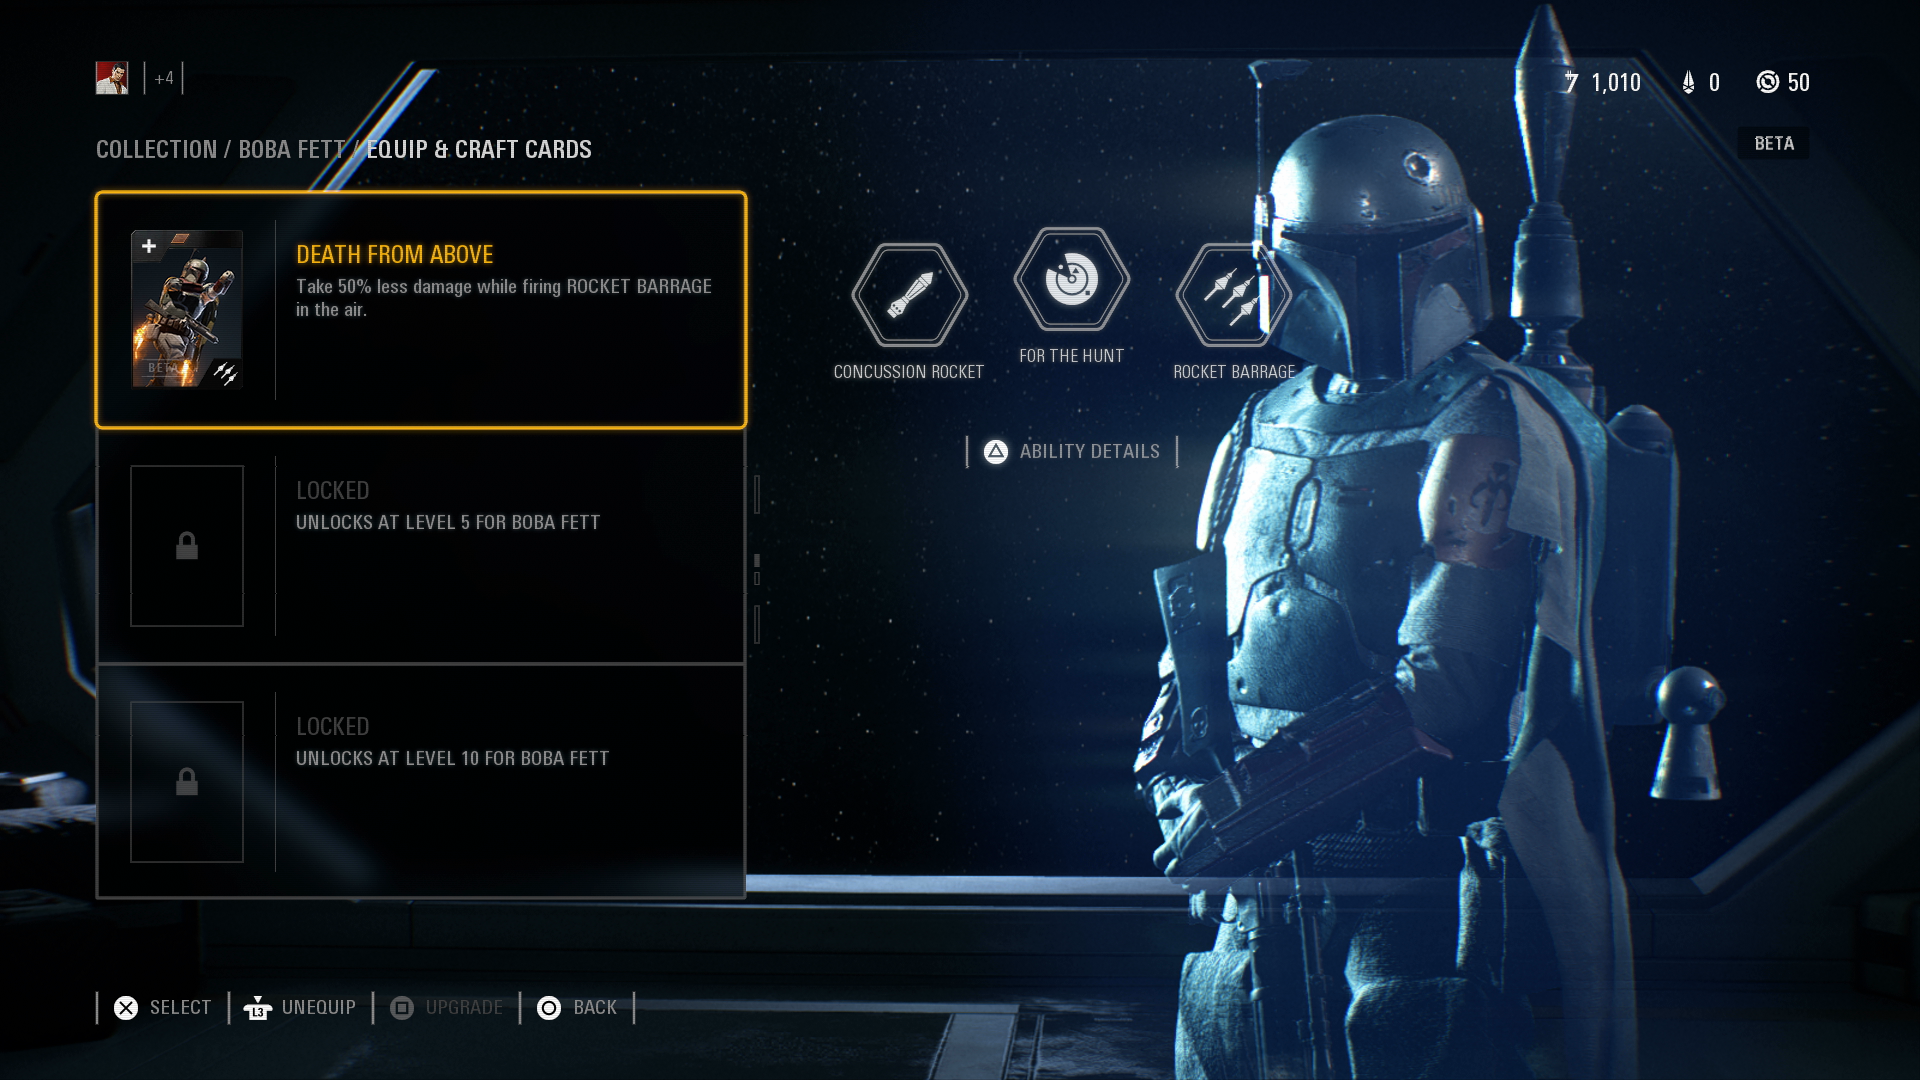 Star Wars Battlefront 2 loot crate system changes for launch